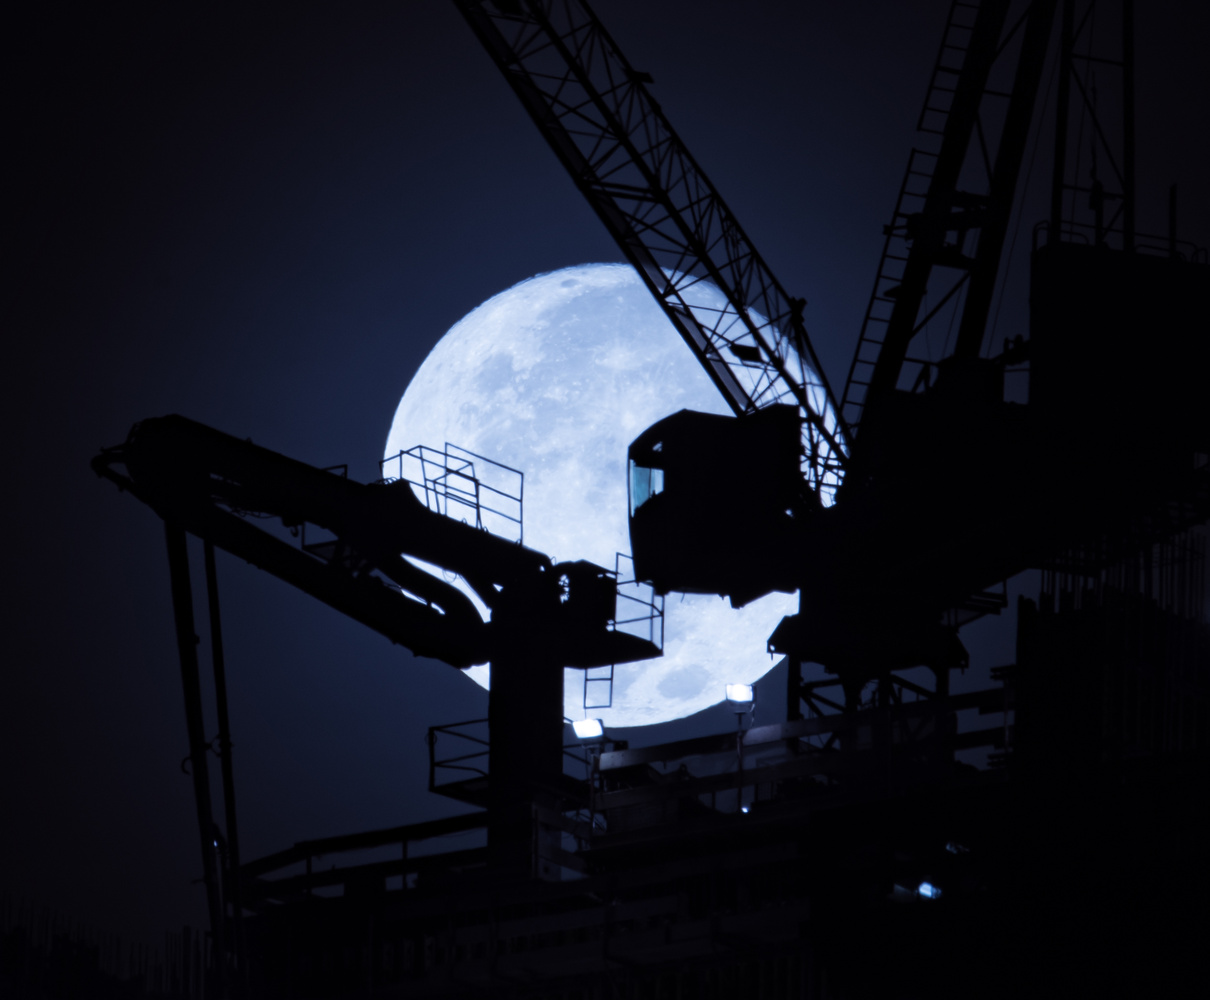 Let's construct the supermoon? by Chait S